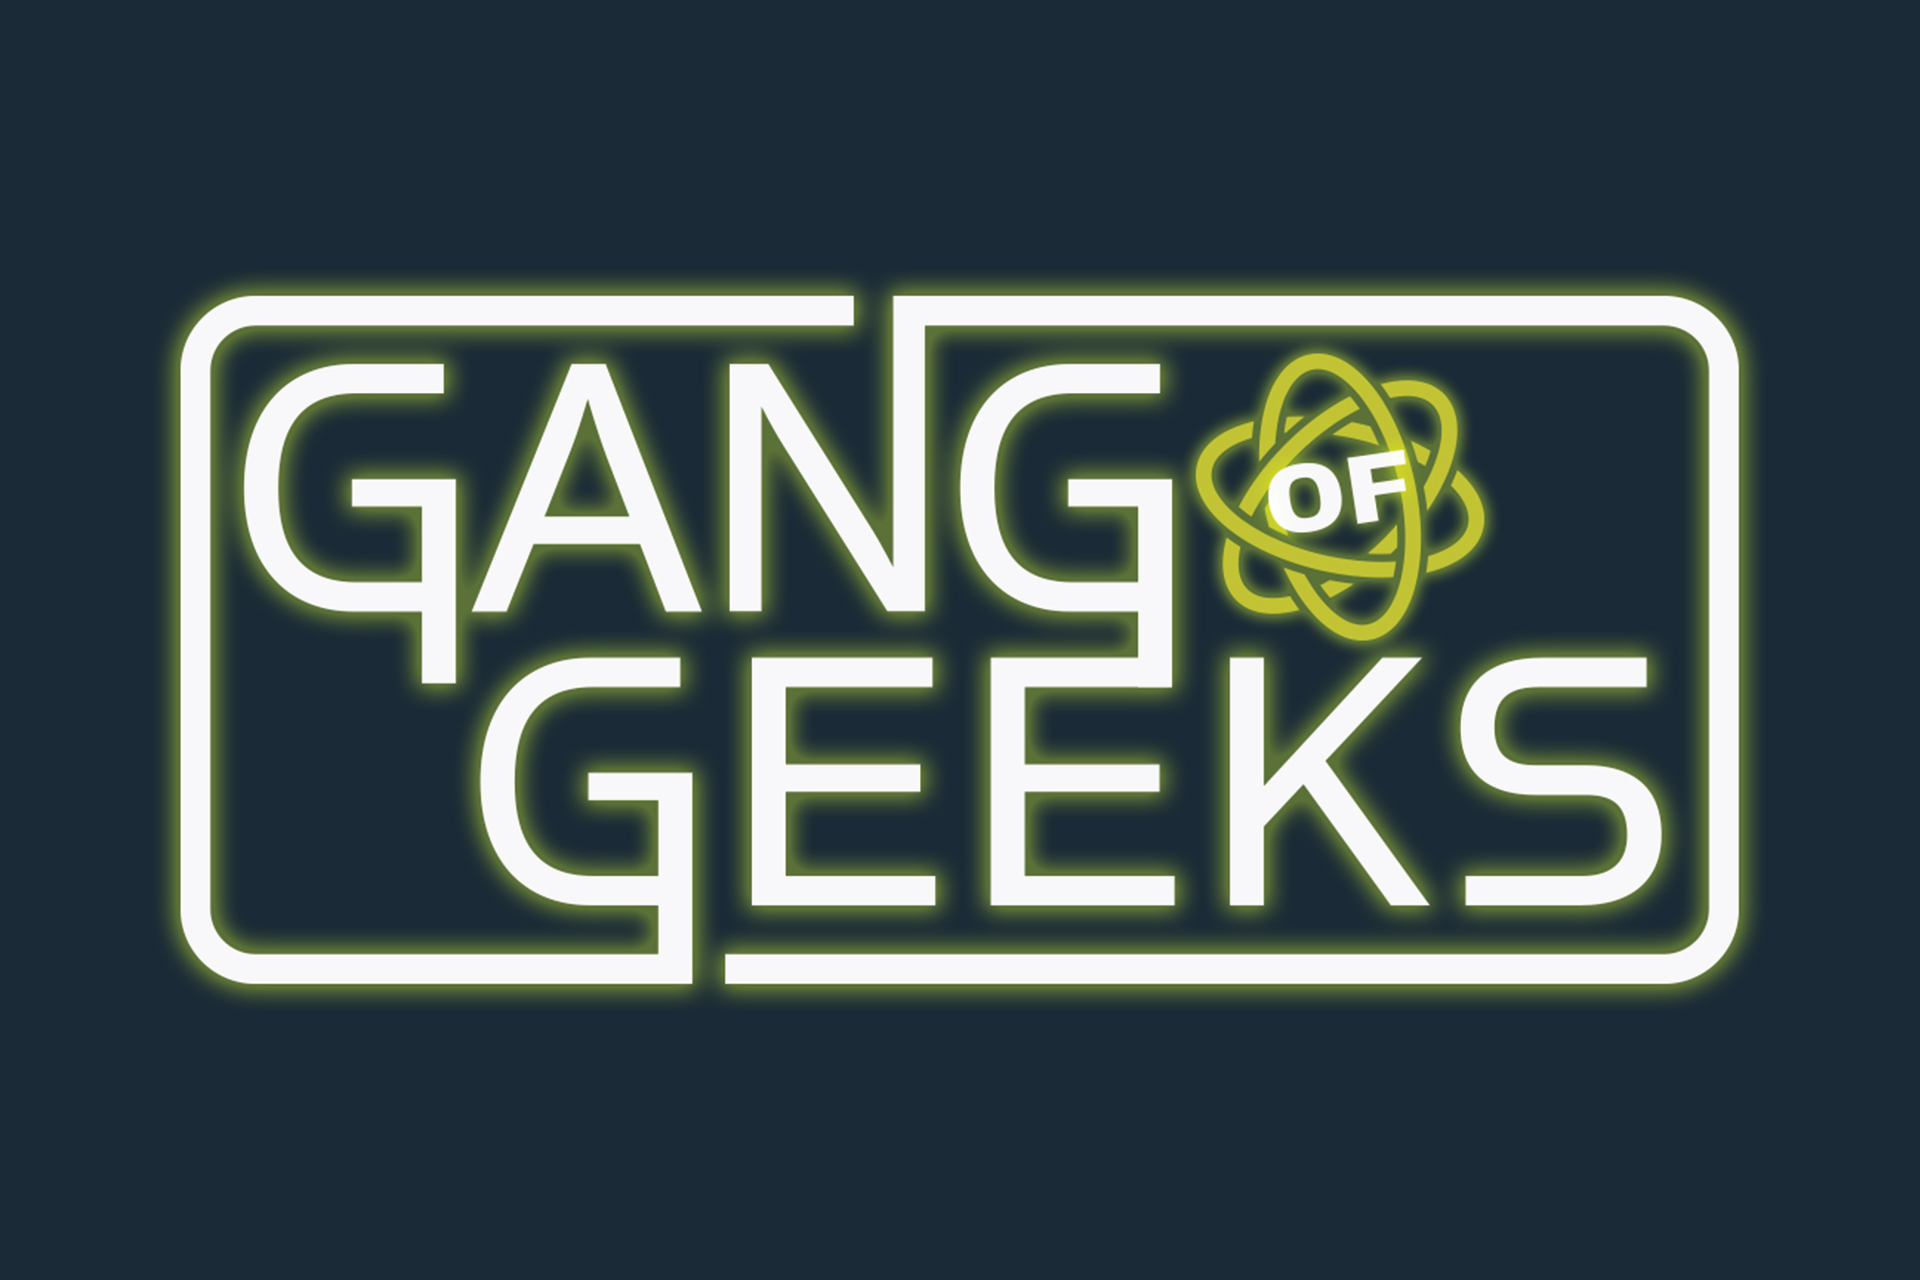 Gang of Geeks Logo Design